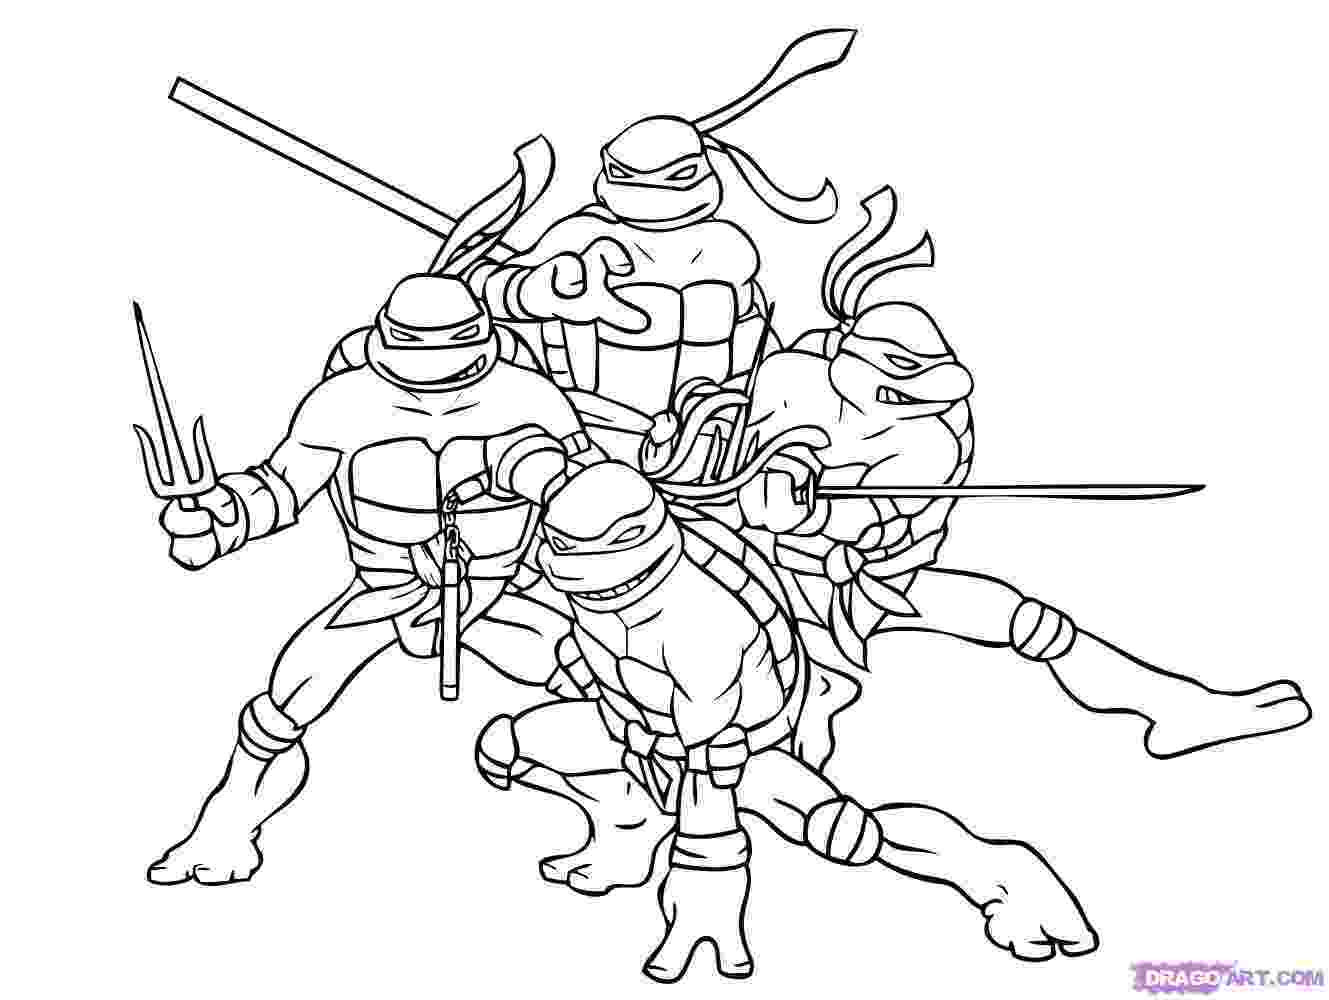 ninja turtle printables teenage mutant ninja turtles coloring pages printables ninja turtle